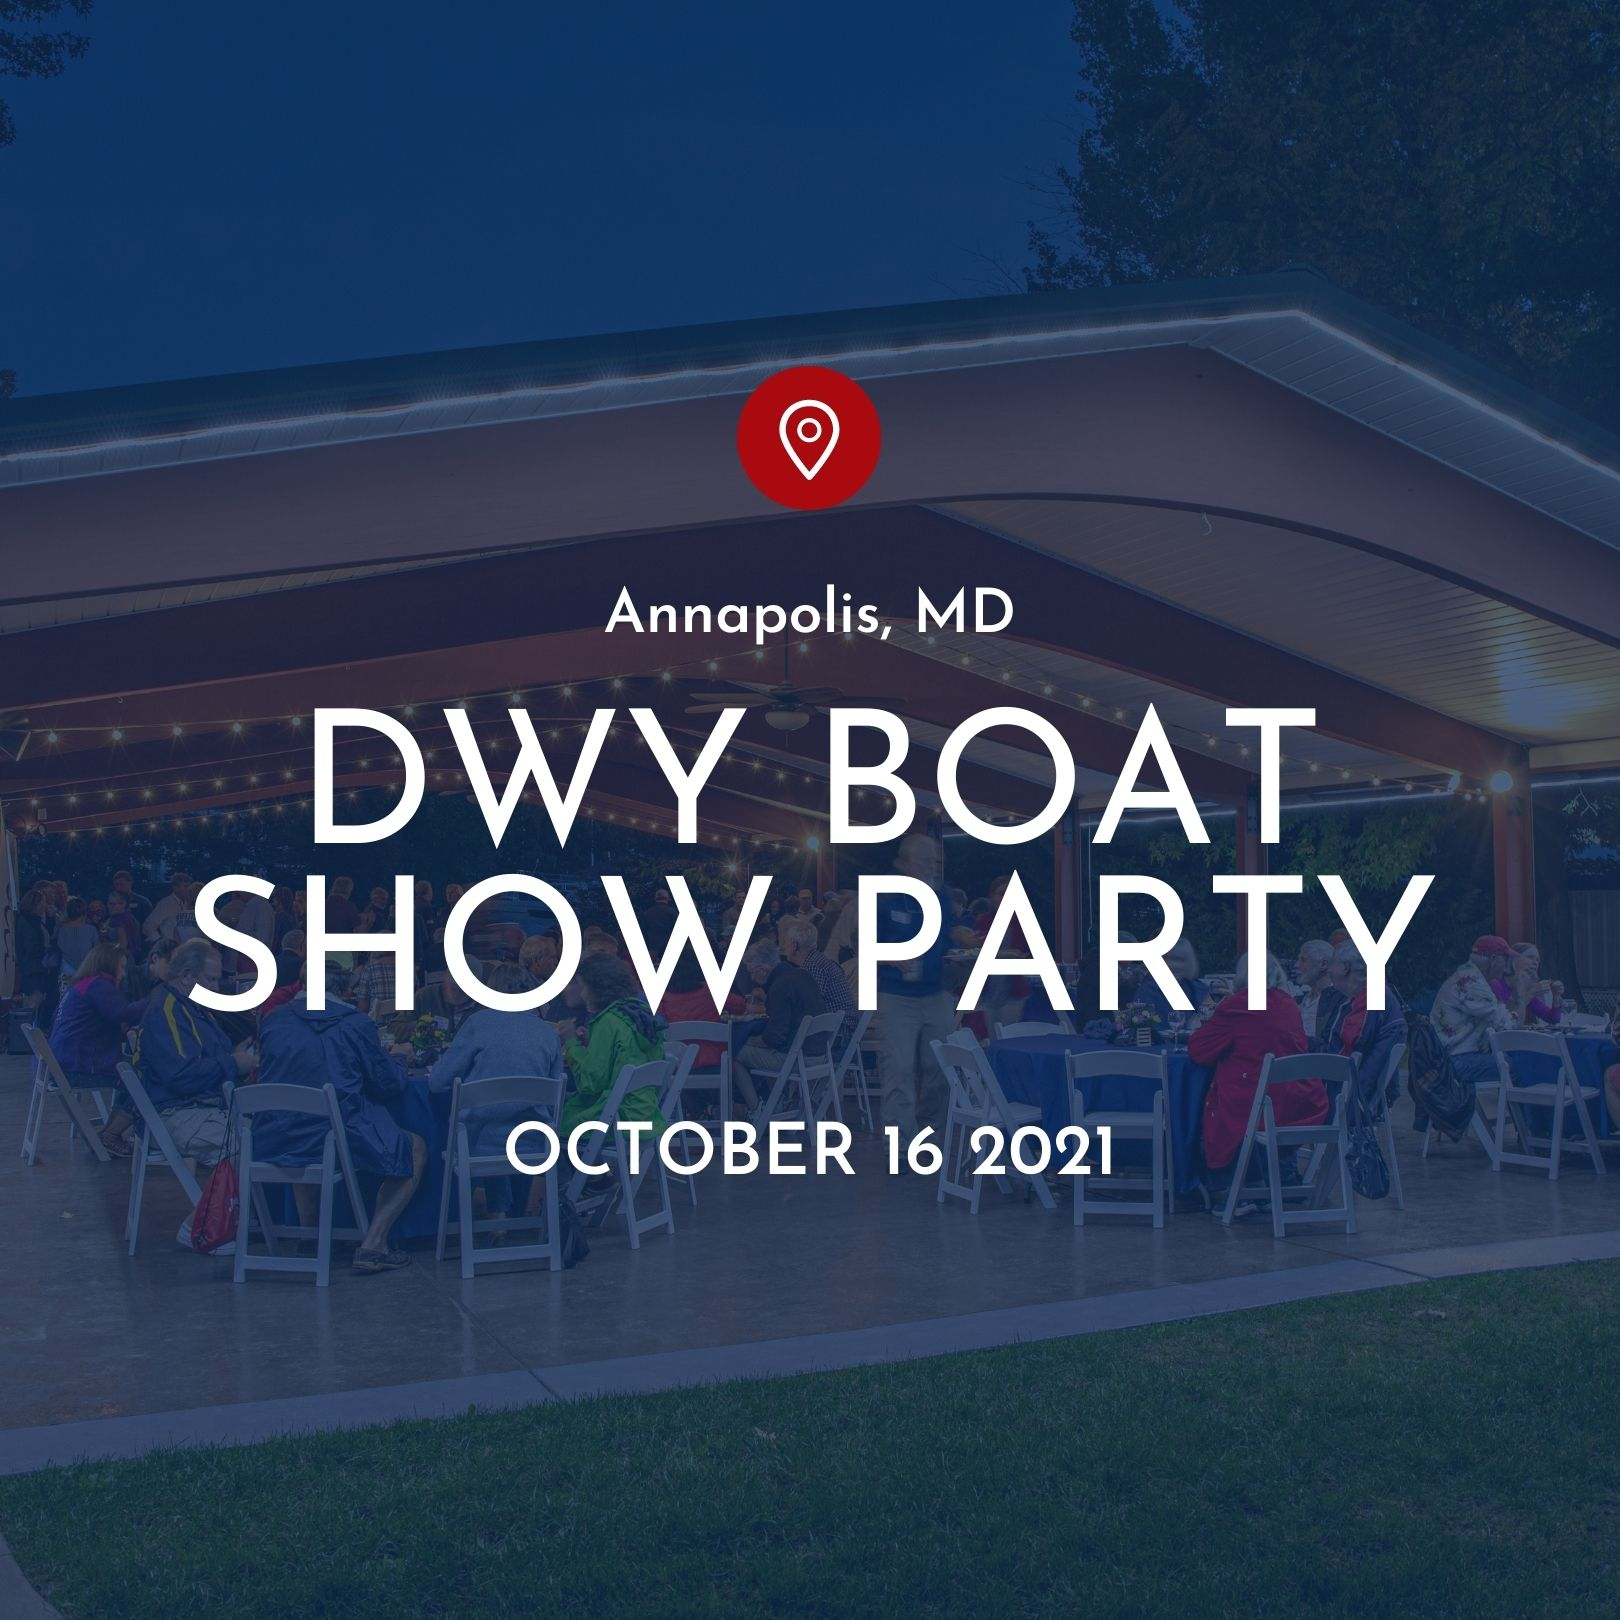 Saturday - Oct 16th @ Port Annapolis Marina from 6 PM to 10 PM